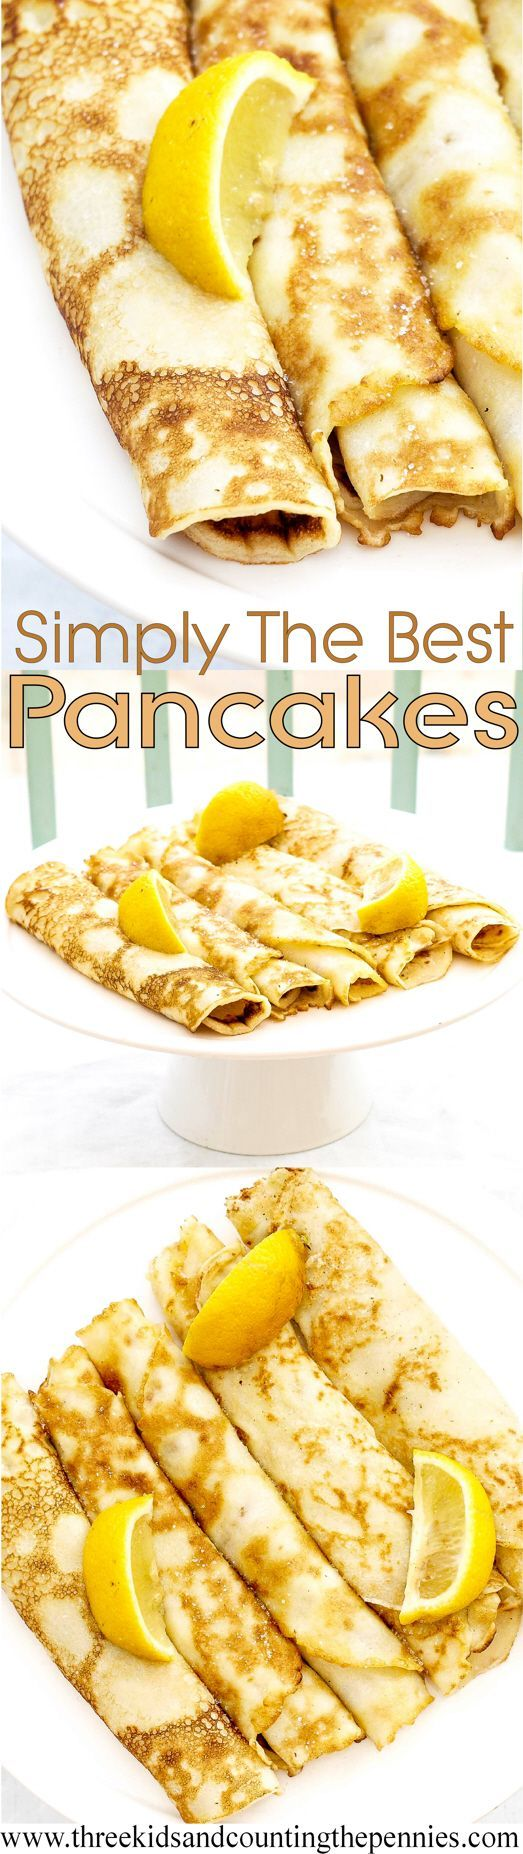 This batter makes such beautifully light pancakes, I struggle to stop at just one batch!